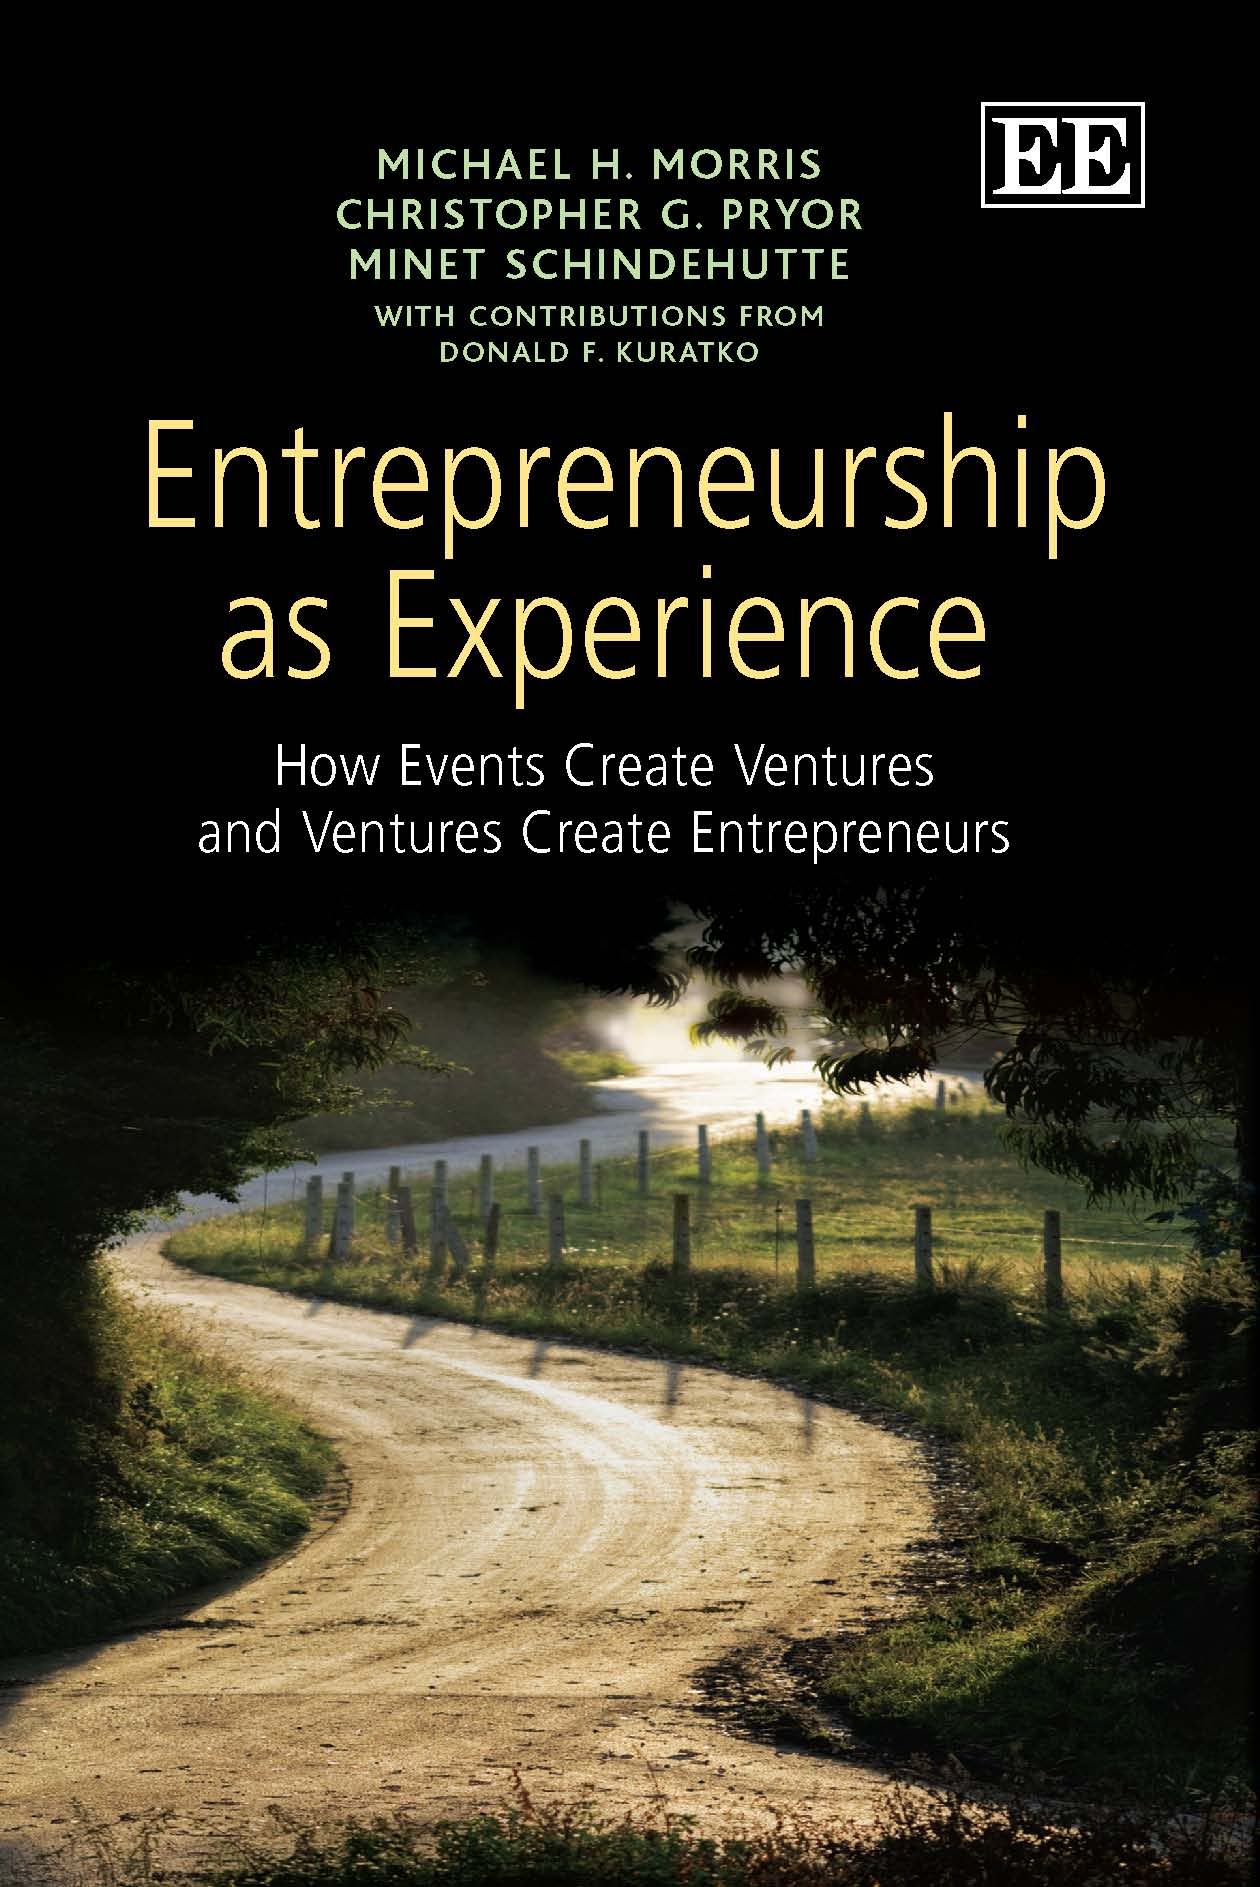 Download Ebook Entrepreneurship as Experience by Michael H. Morris Pdf